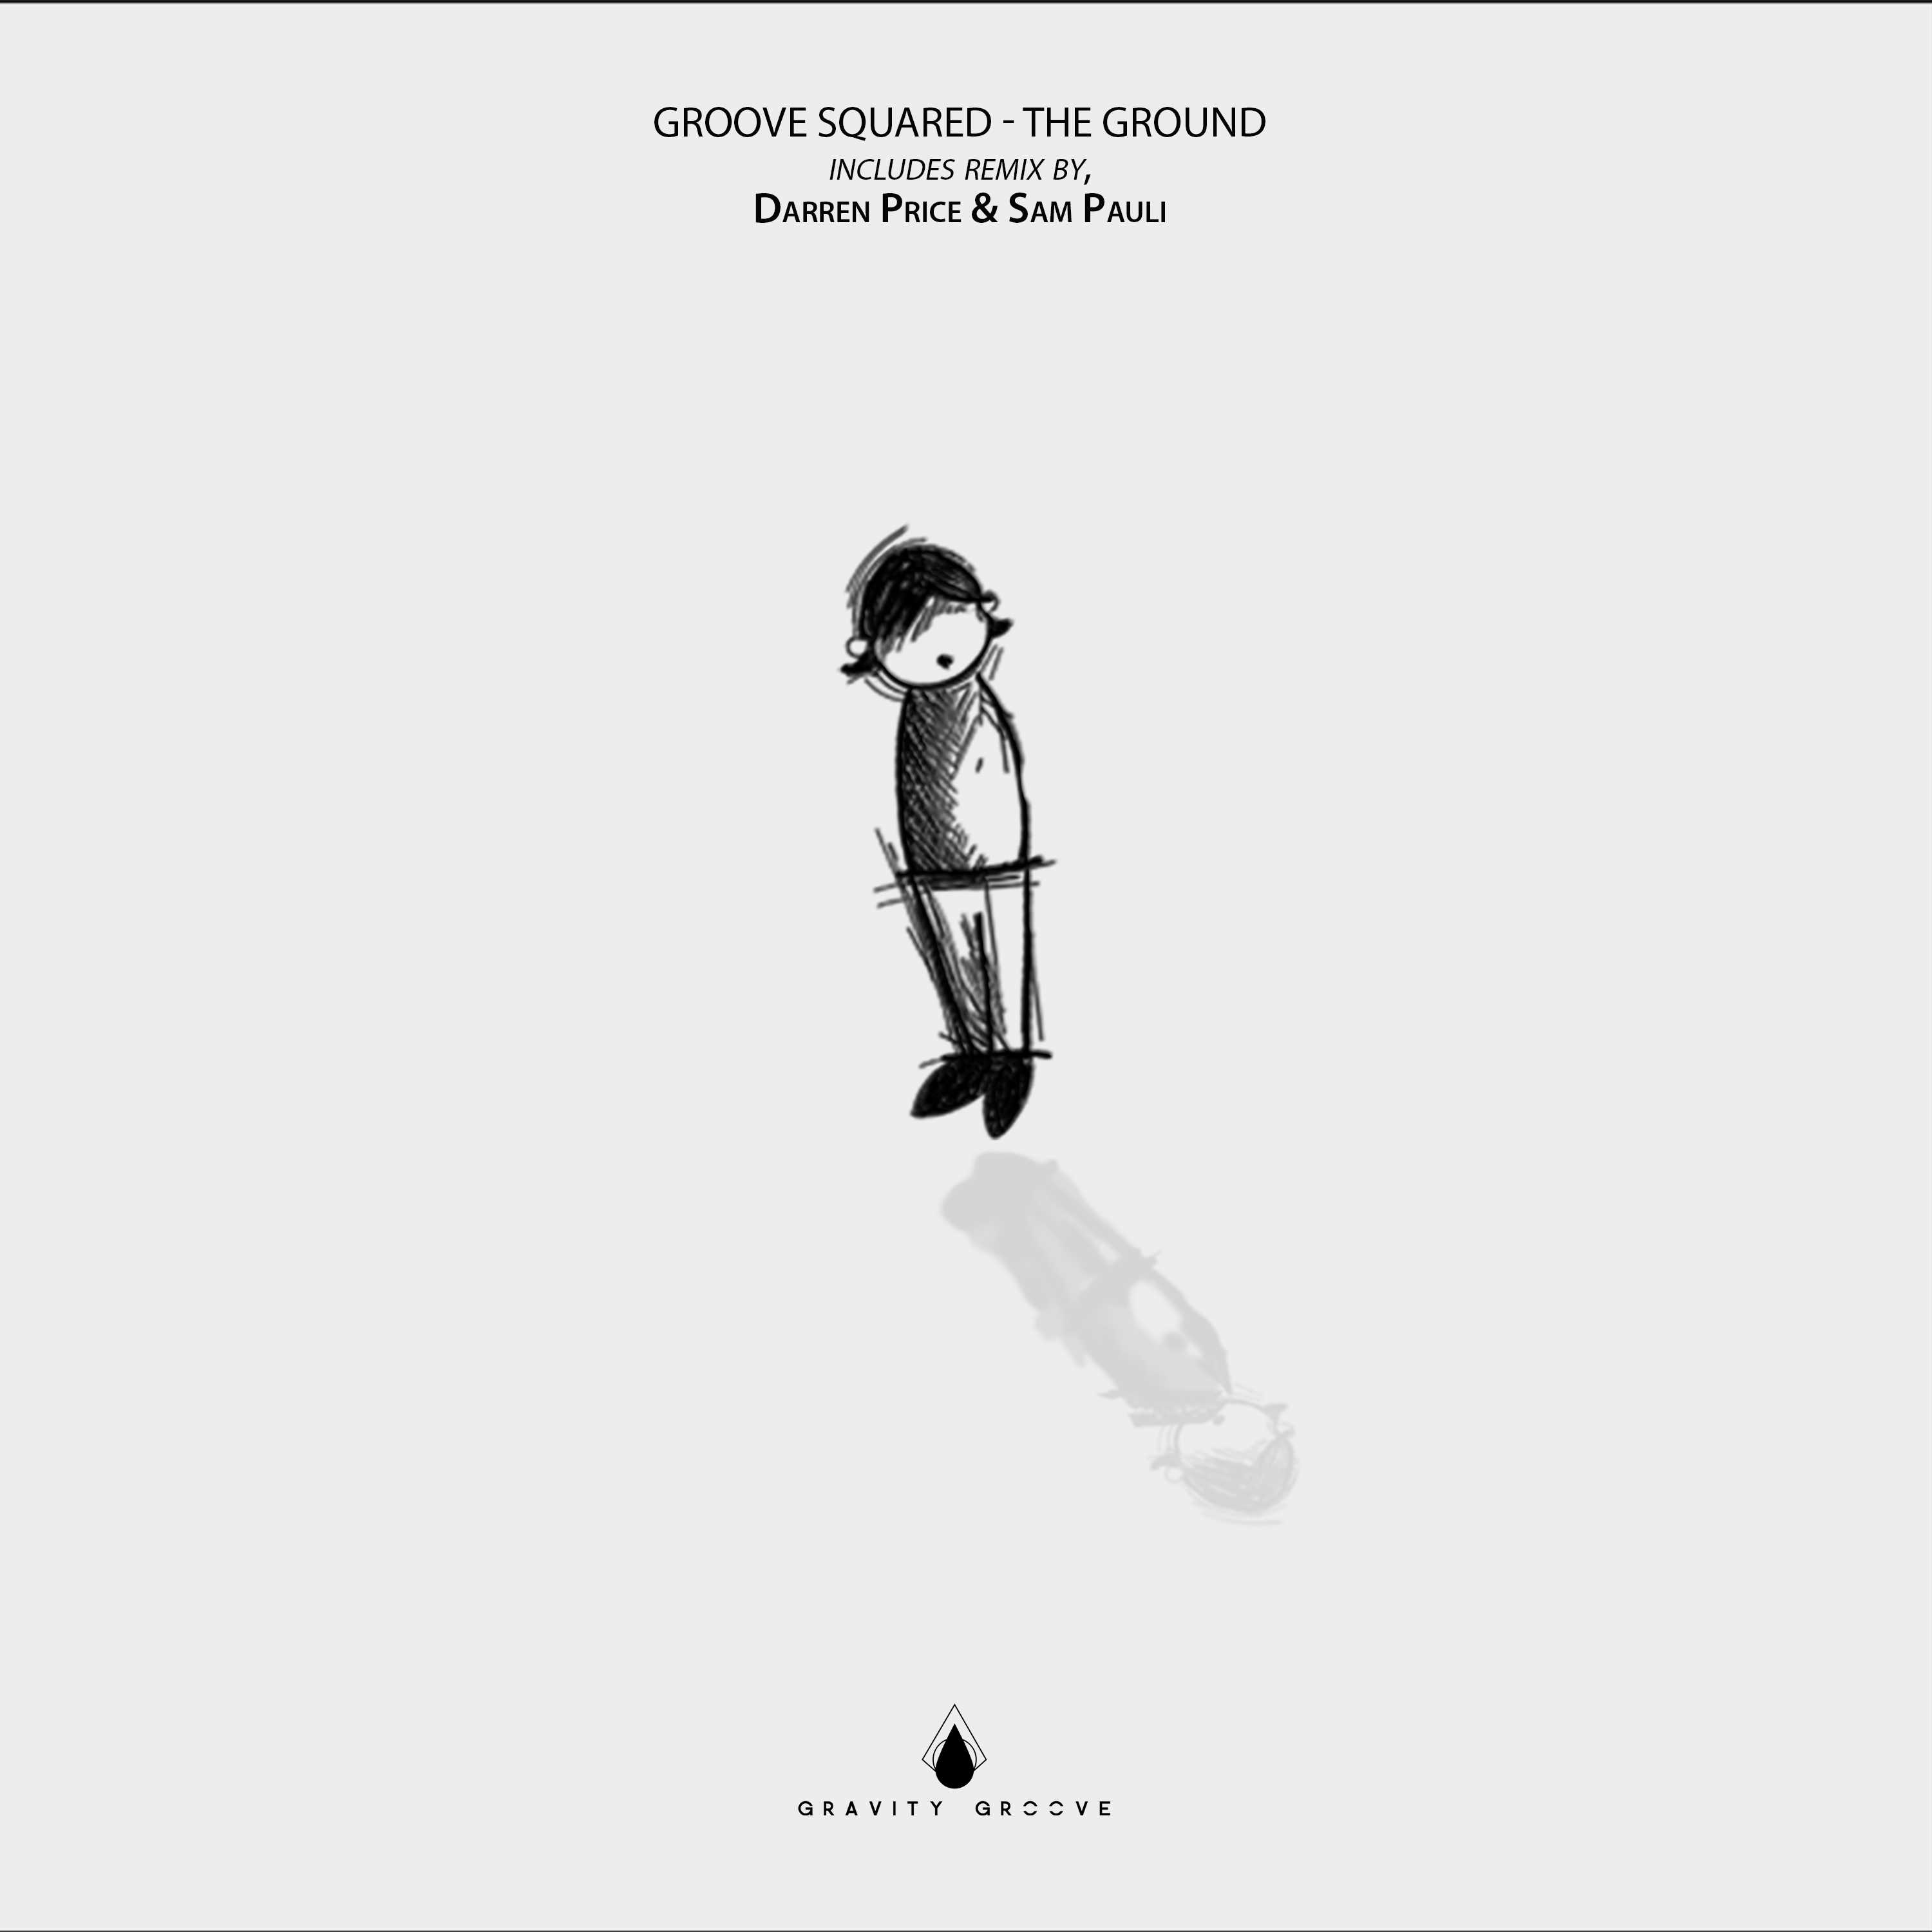 Groove Squared – The Ground (Darren Price Old School Mix)(Gravity Groove)